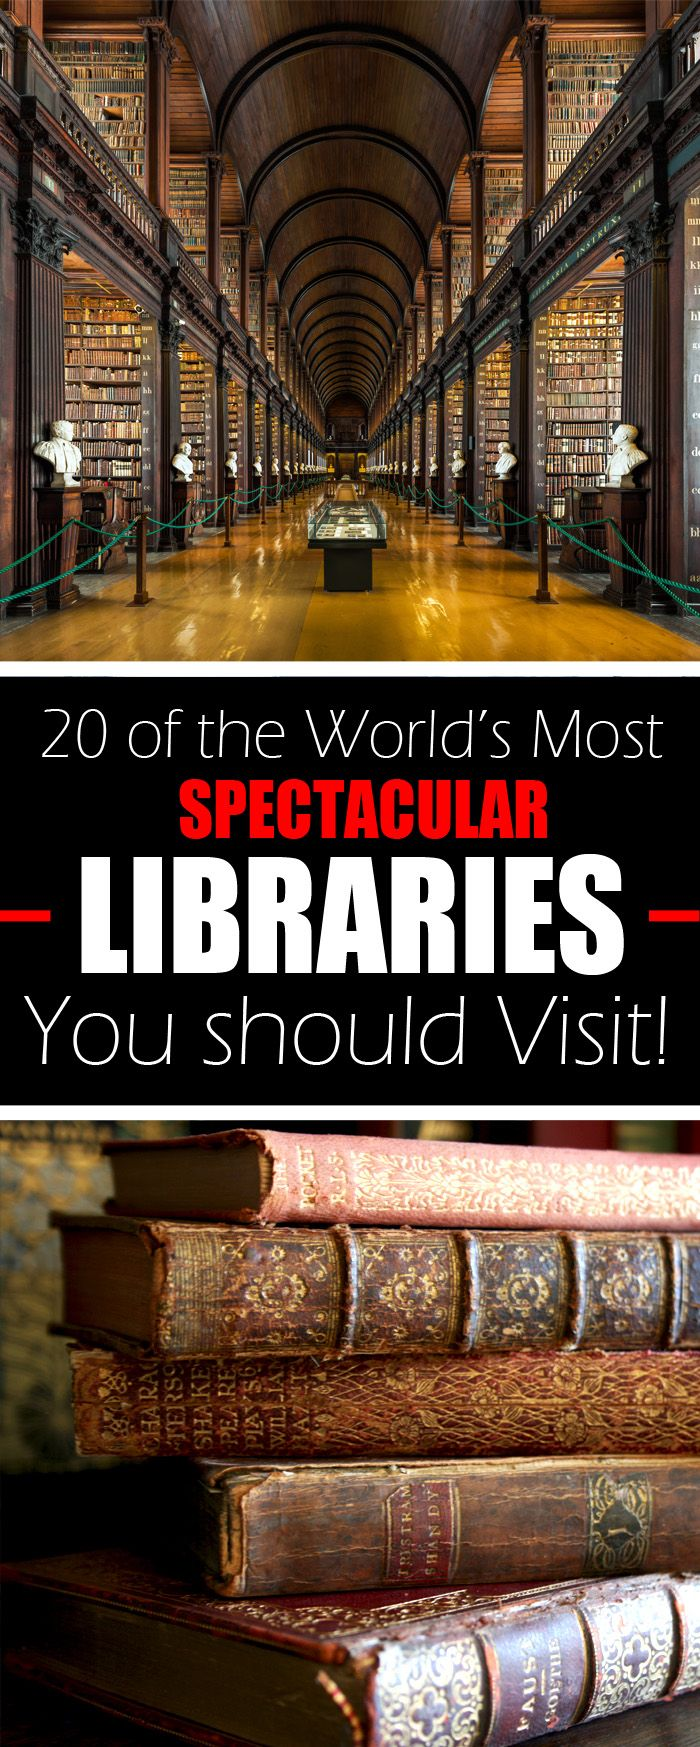 20 of the World's Most Spectacular Libraries You should Visit! #travel #culture #books